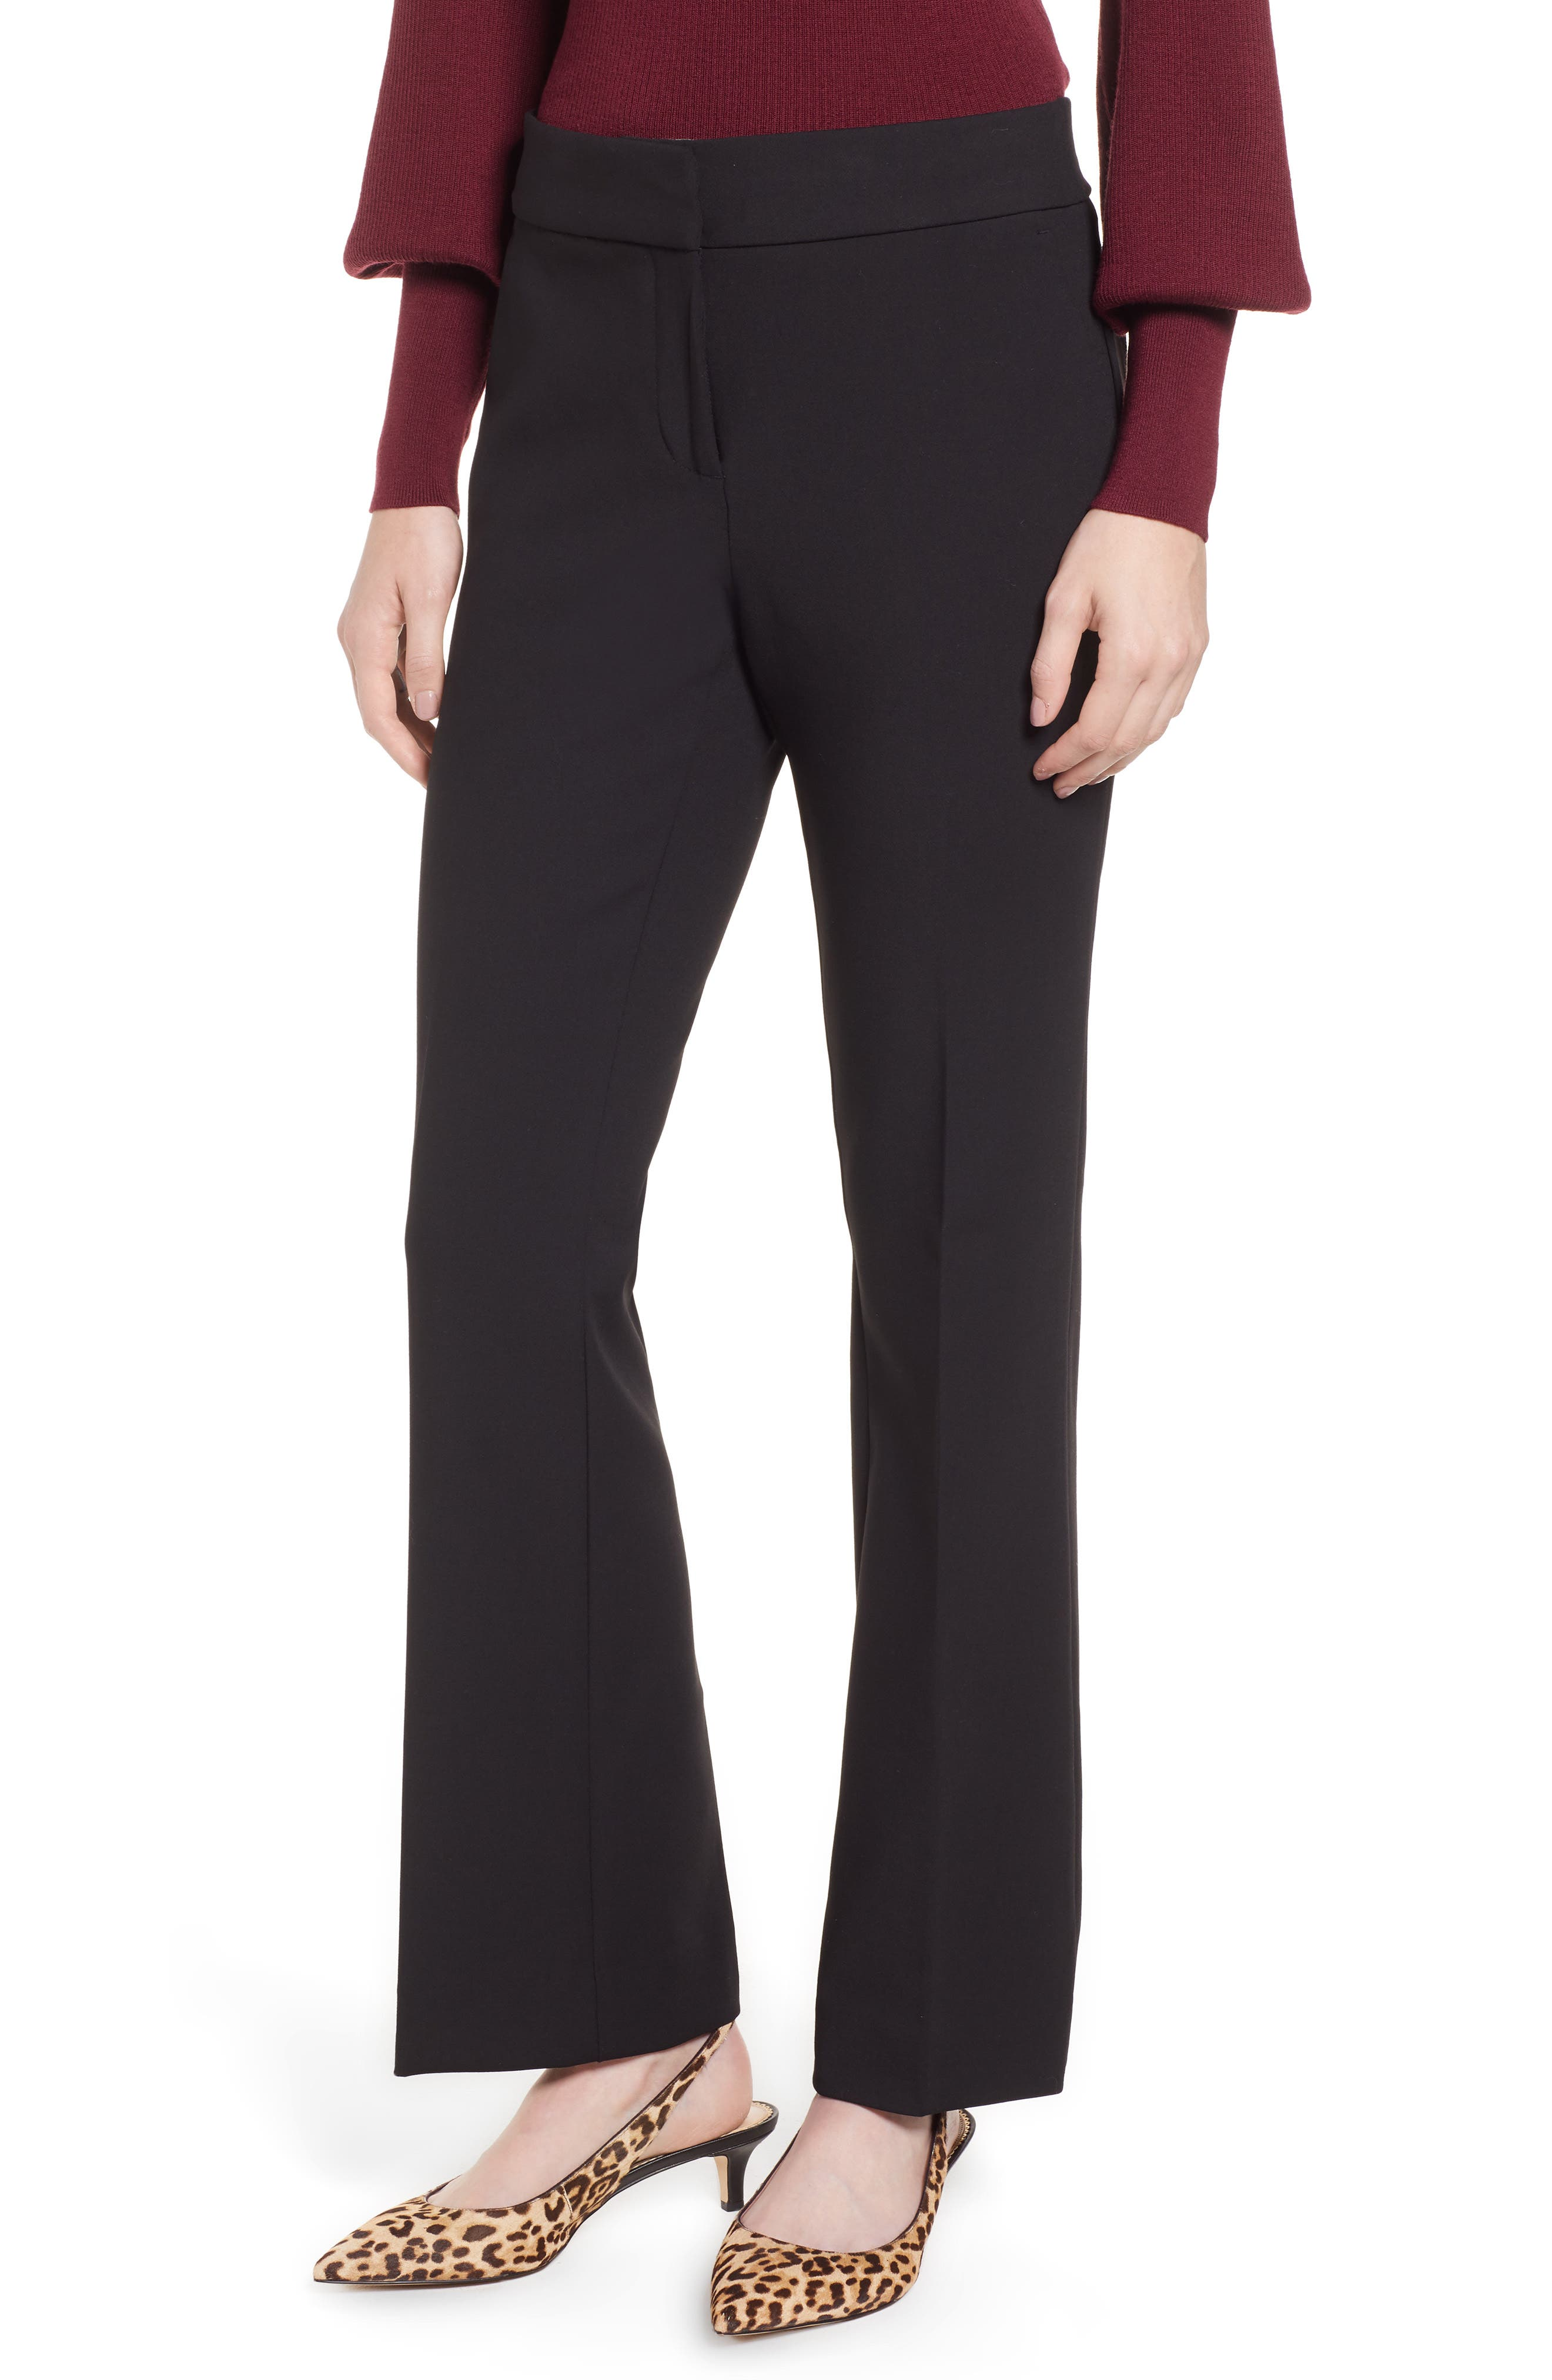 Edie Full Length Trouser in Four-Season Stretch,                         Main,                         color, 001